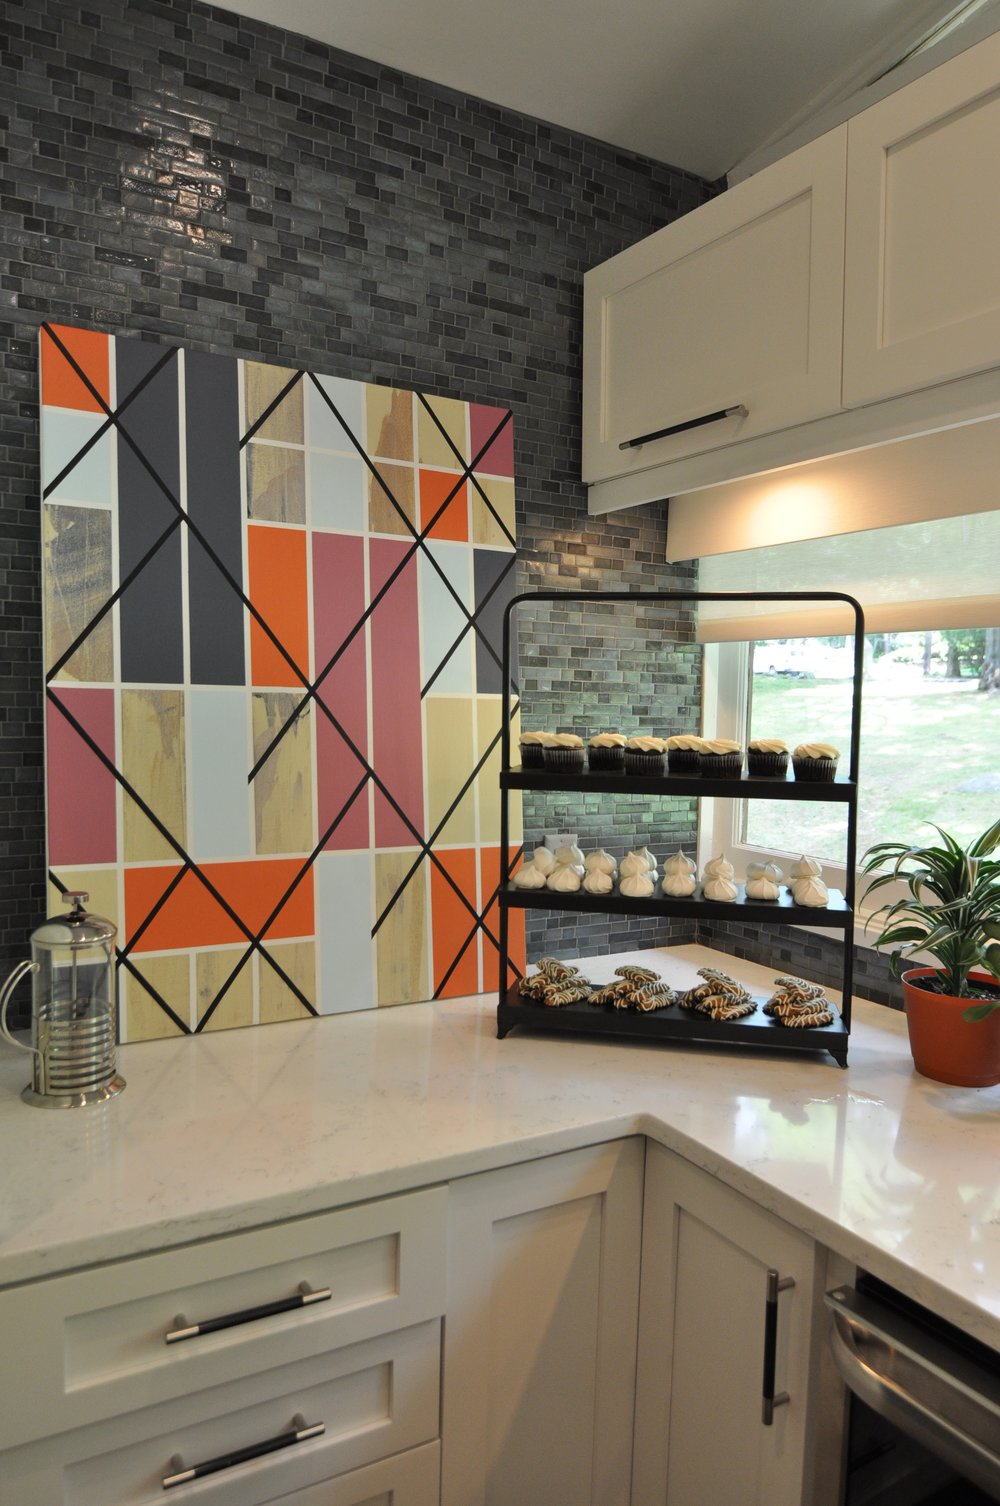 Kim A Mitchell_Design Lead_HGTV_The Property Brothers_Season 6_Episode 9_Close-up Glass Tile Backsplash_Art_Staging_2017.jpg